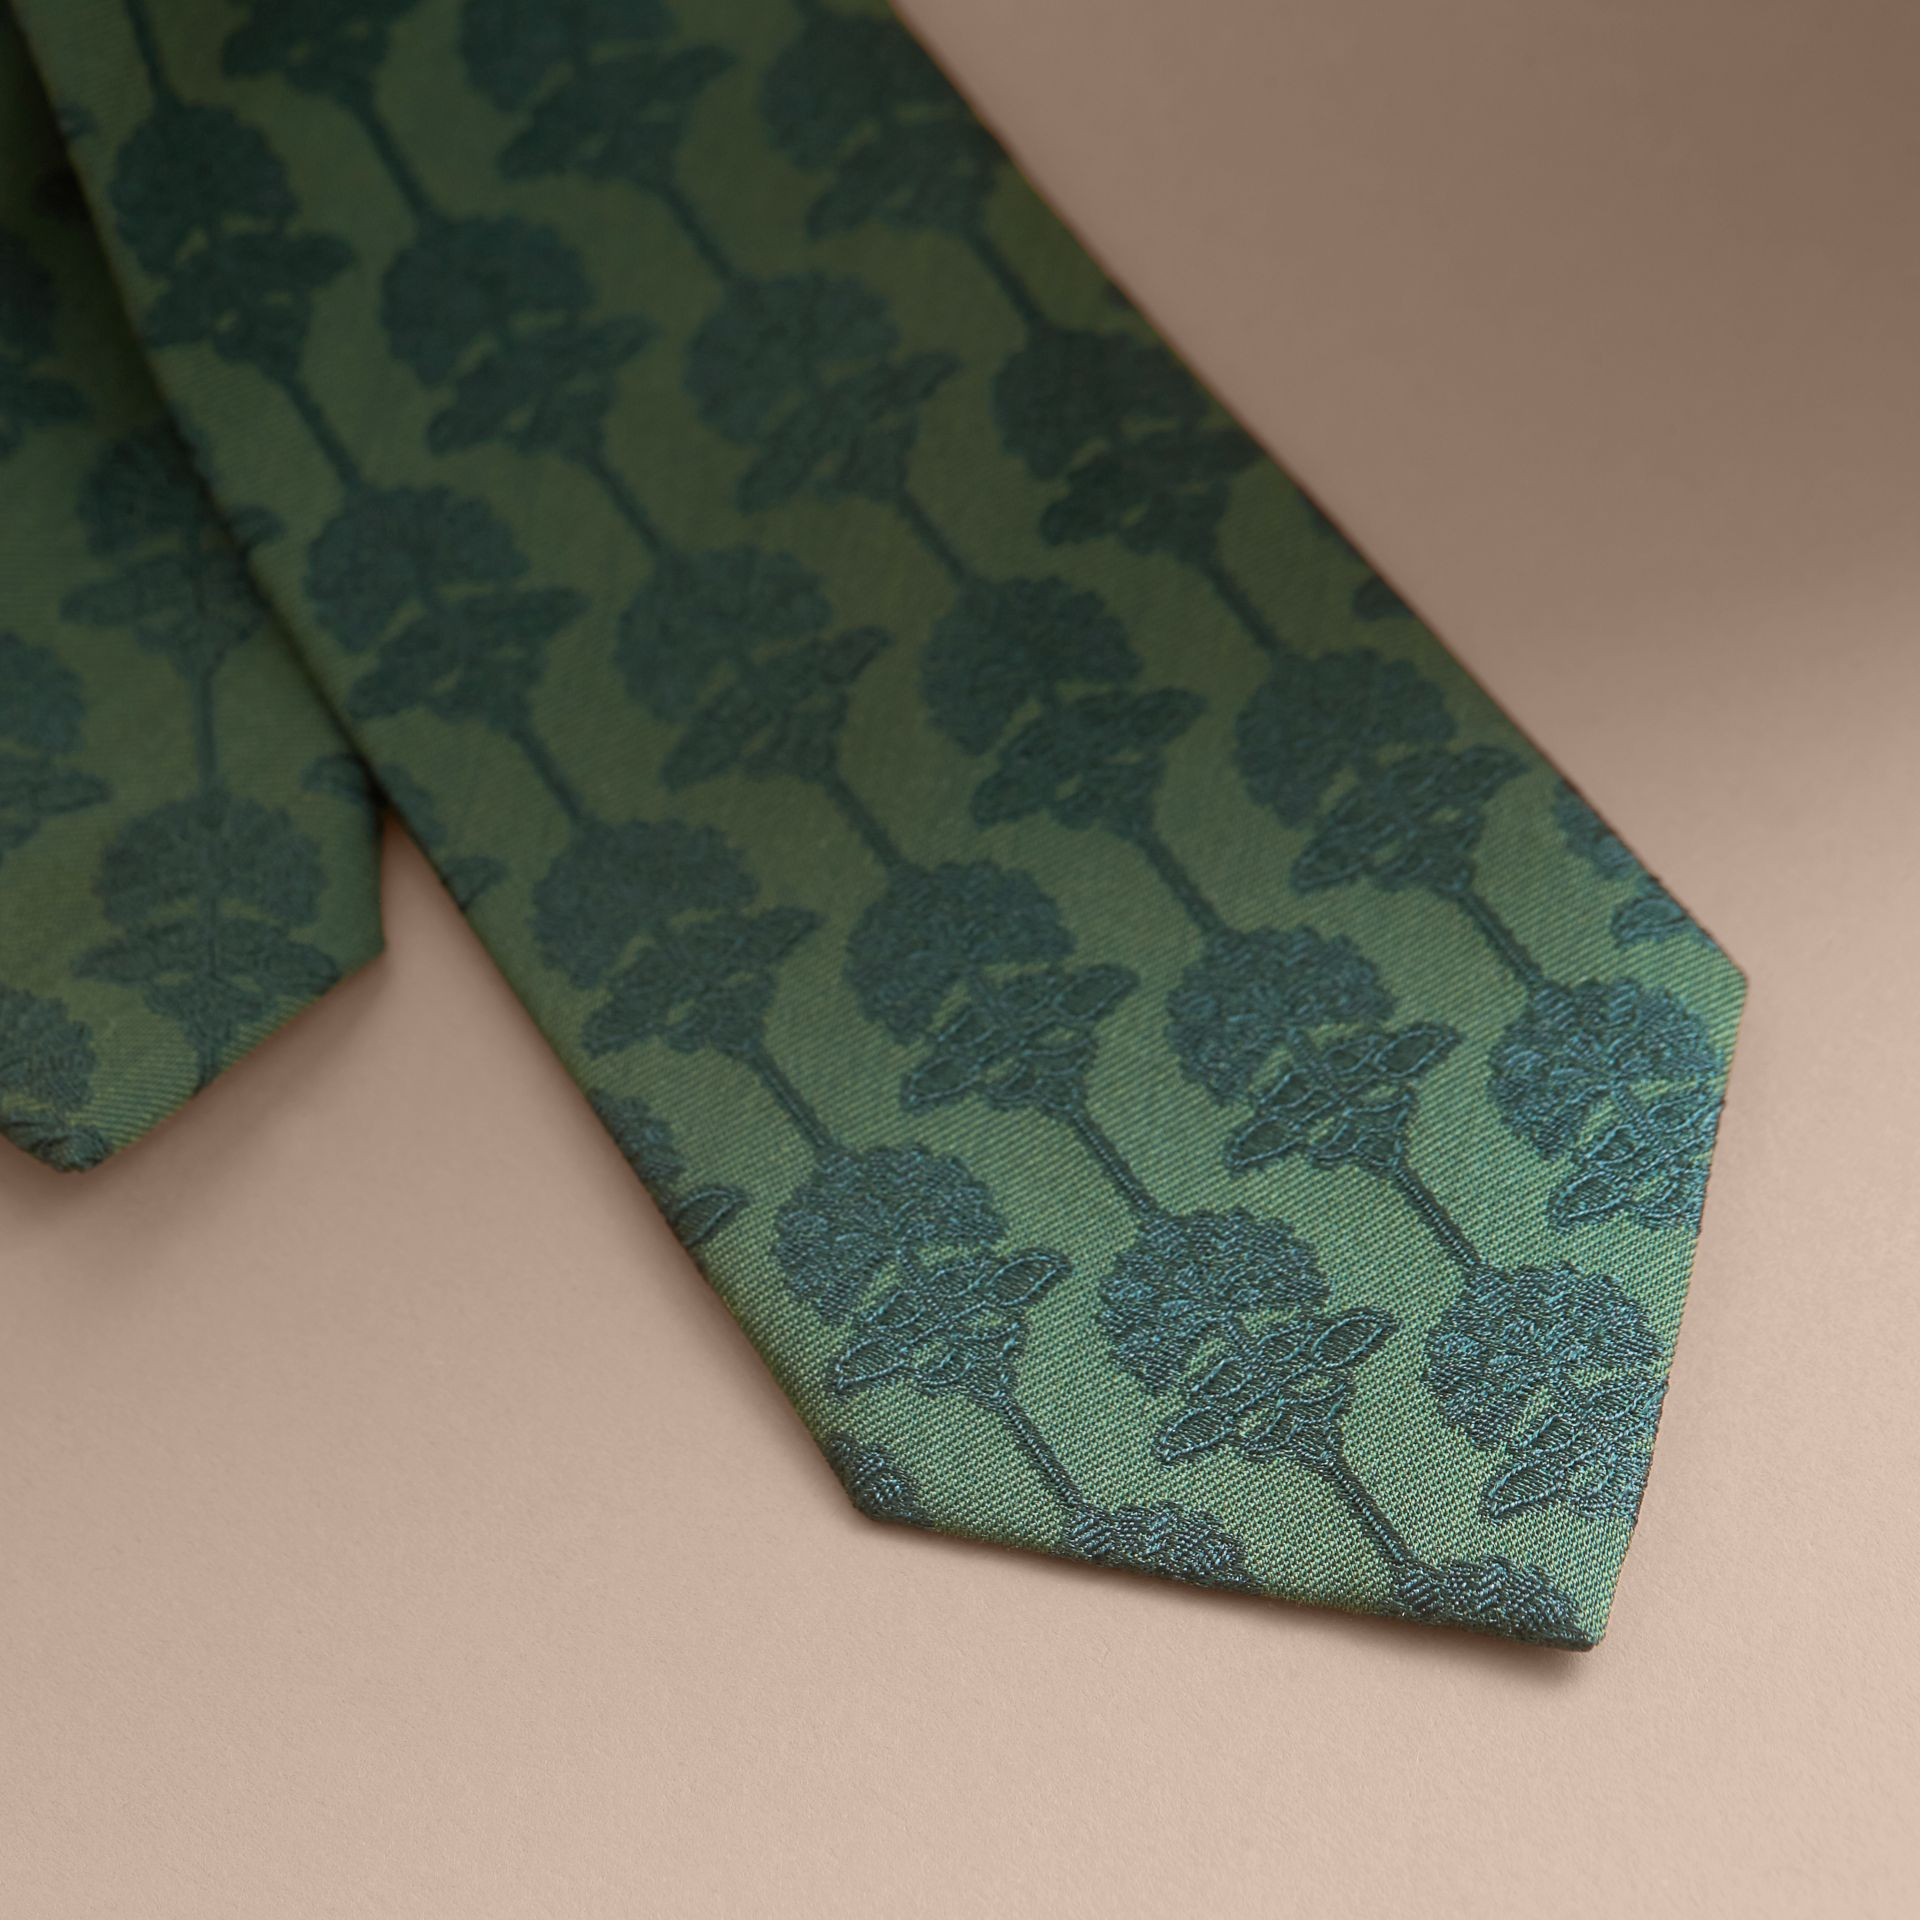 Slim Cut Floral Jacquard Silk Cotton Tie in Pine Green - Men | Burberry - gallery image 2